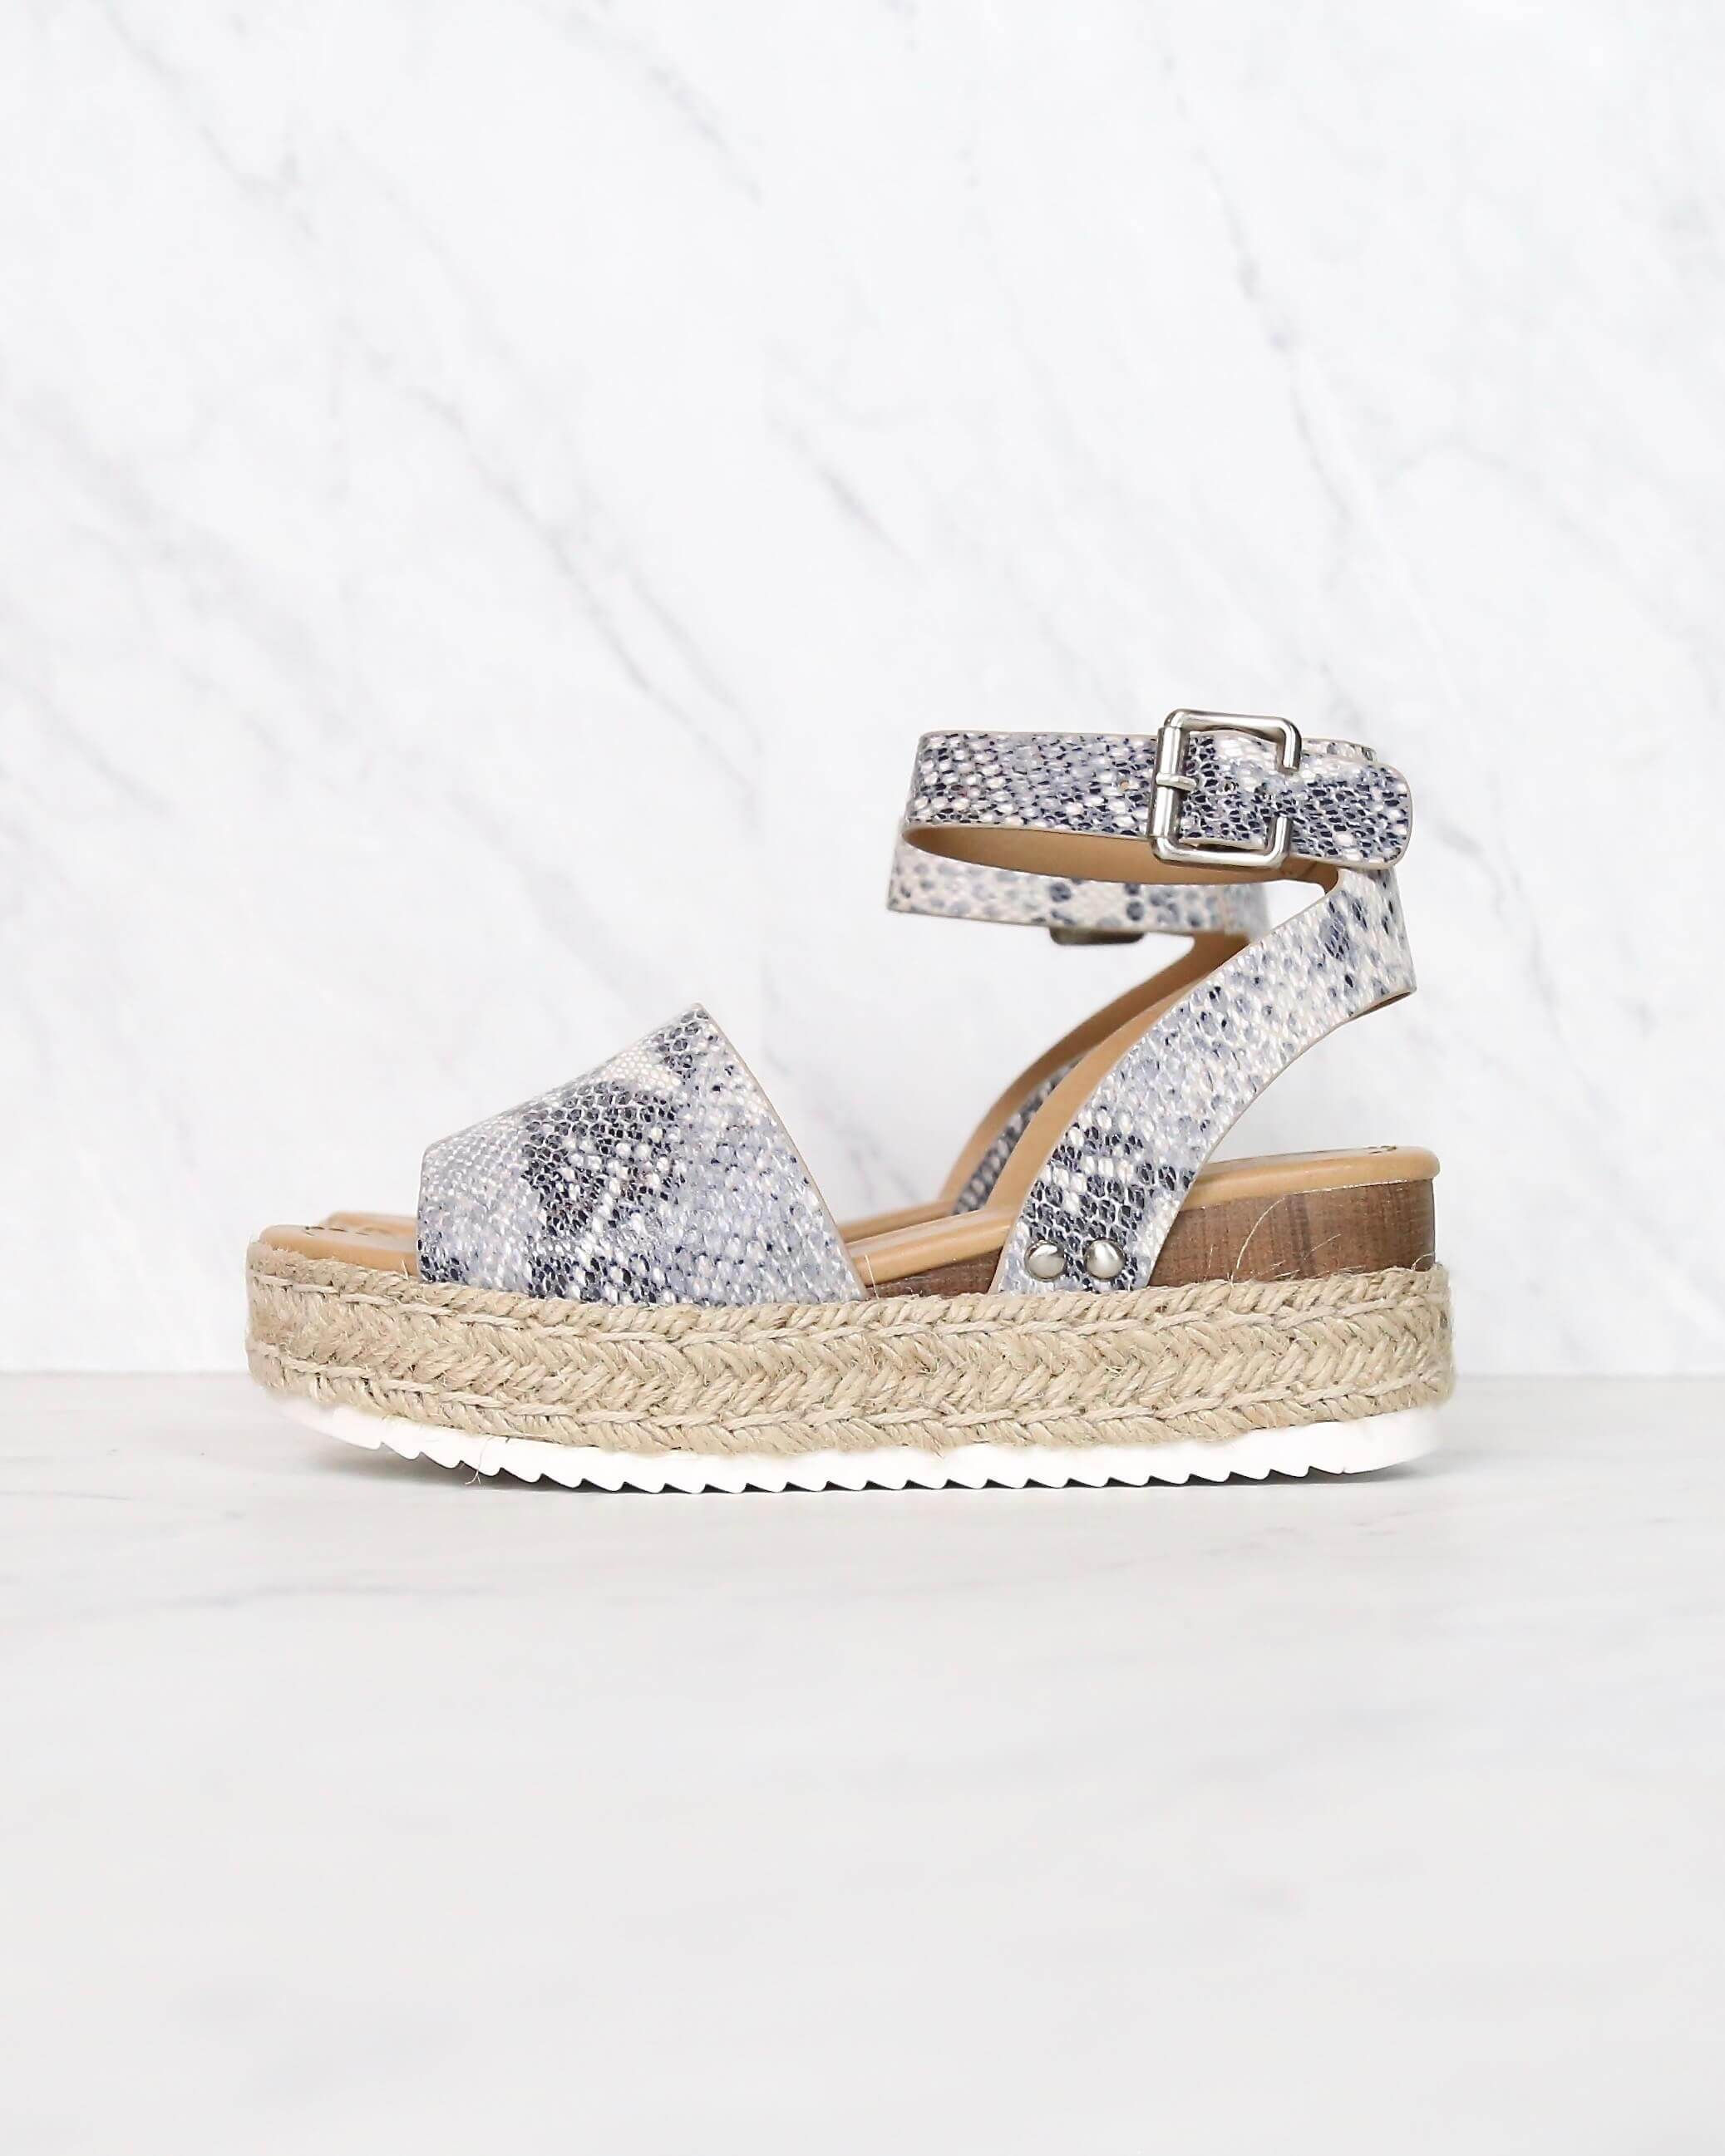 62478847668 Trendy Sporty Flatfrom Espadrille Sandal with Adjustable Ankle Strap i